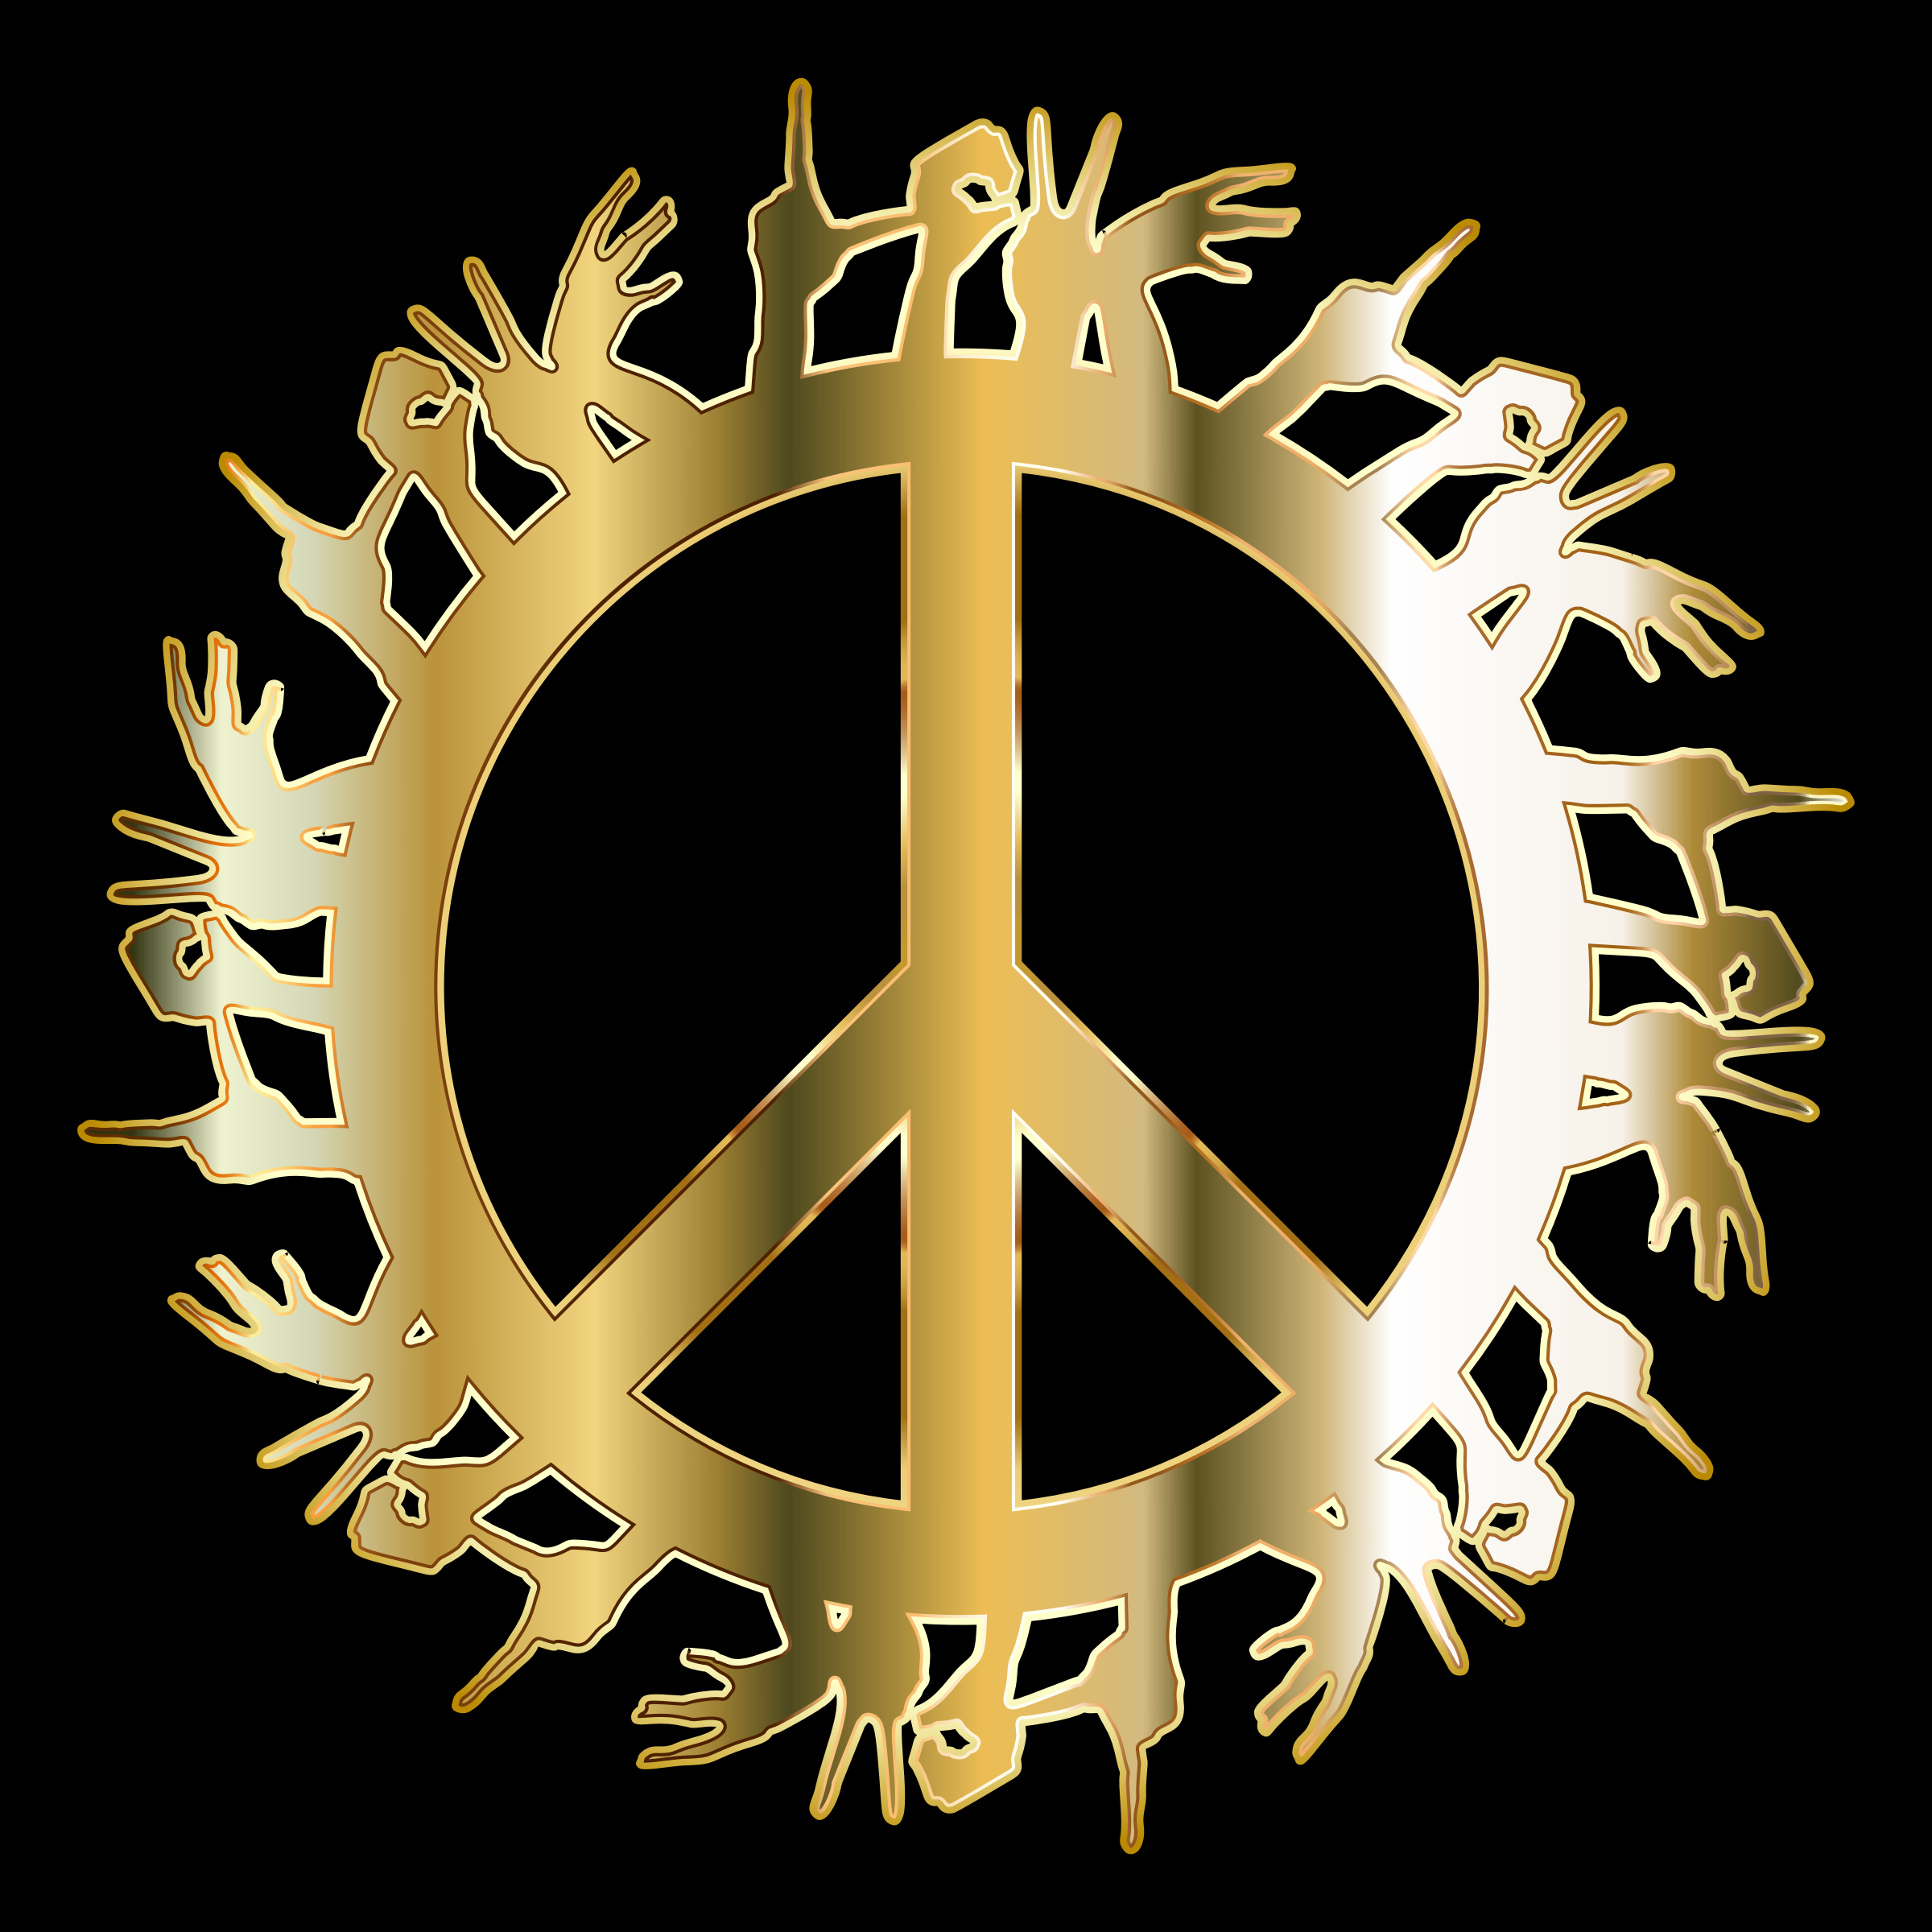 Gold Love Hands Peace by GDJ